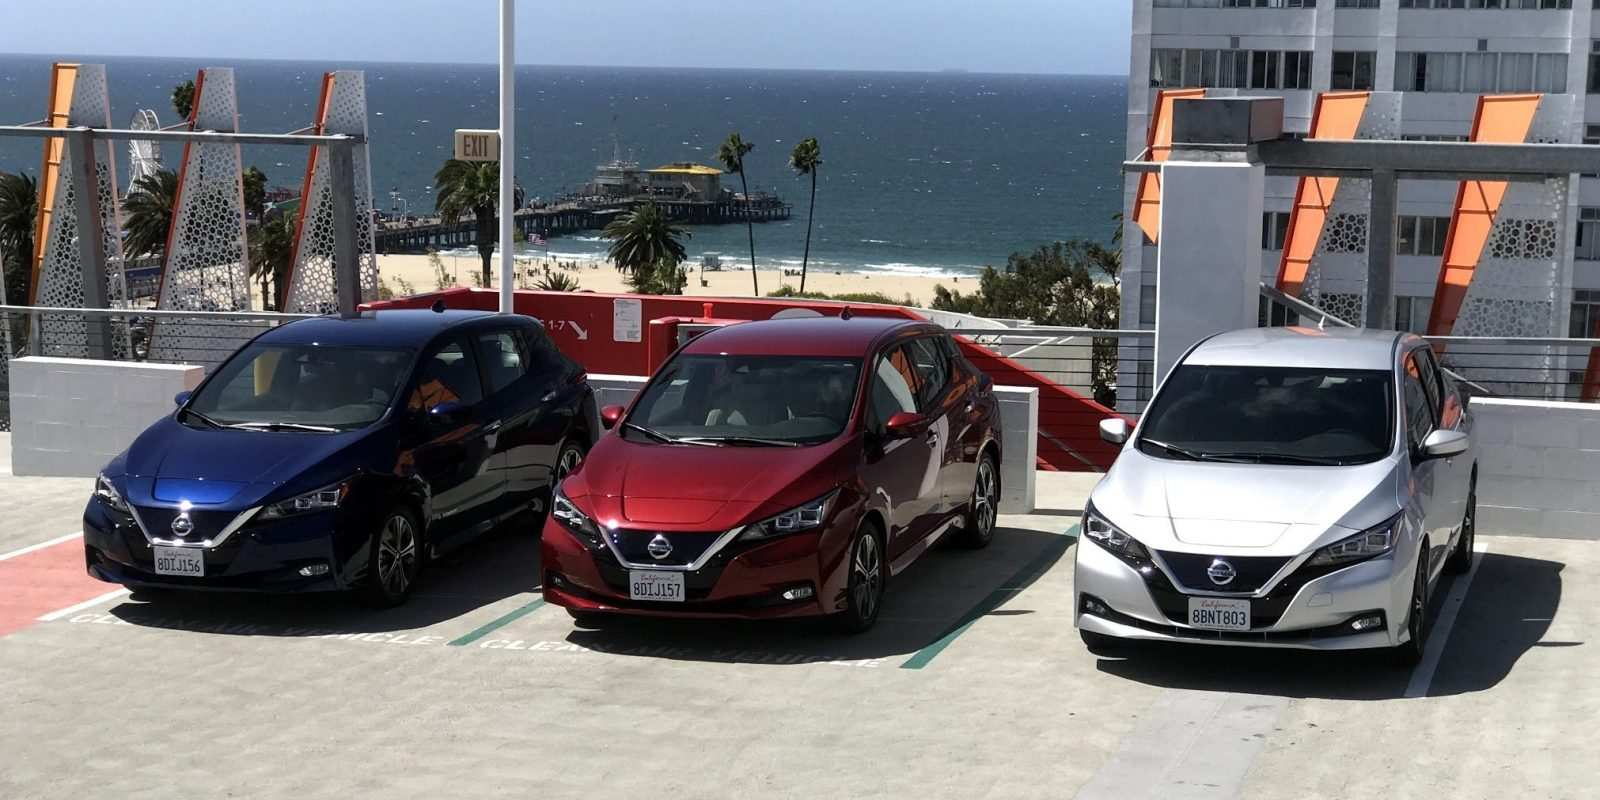 90 Great 2020 Nissan Leaf 60 Kwh Battery Ratings with 2020 Nissan Leaf 60 Kwh Battery